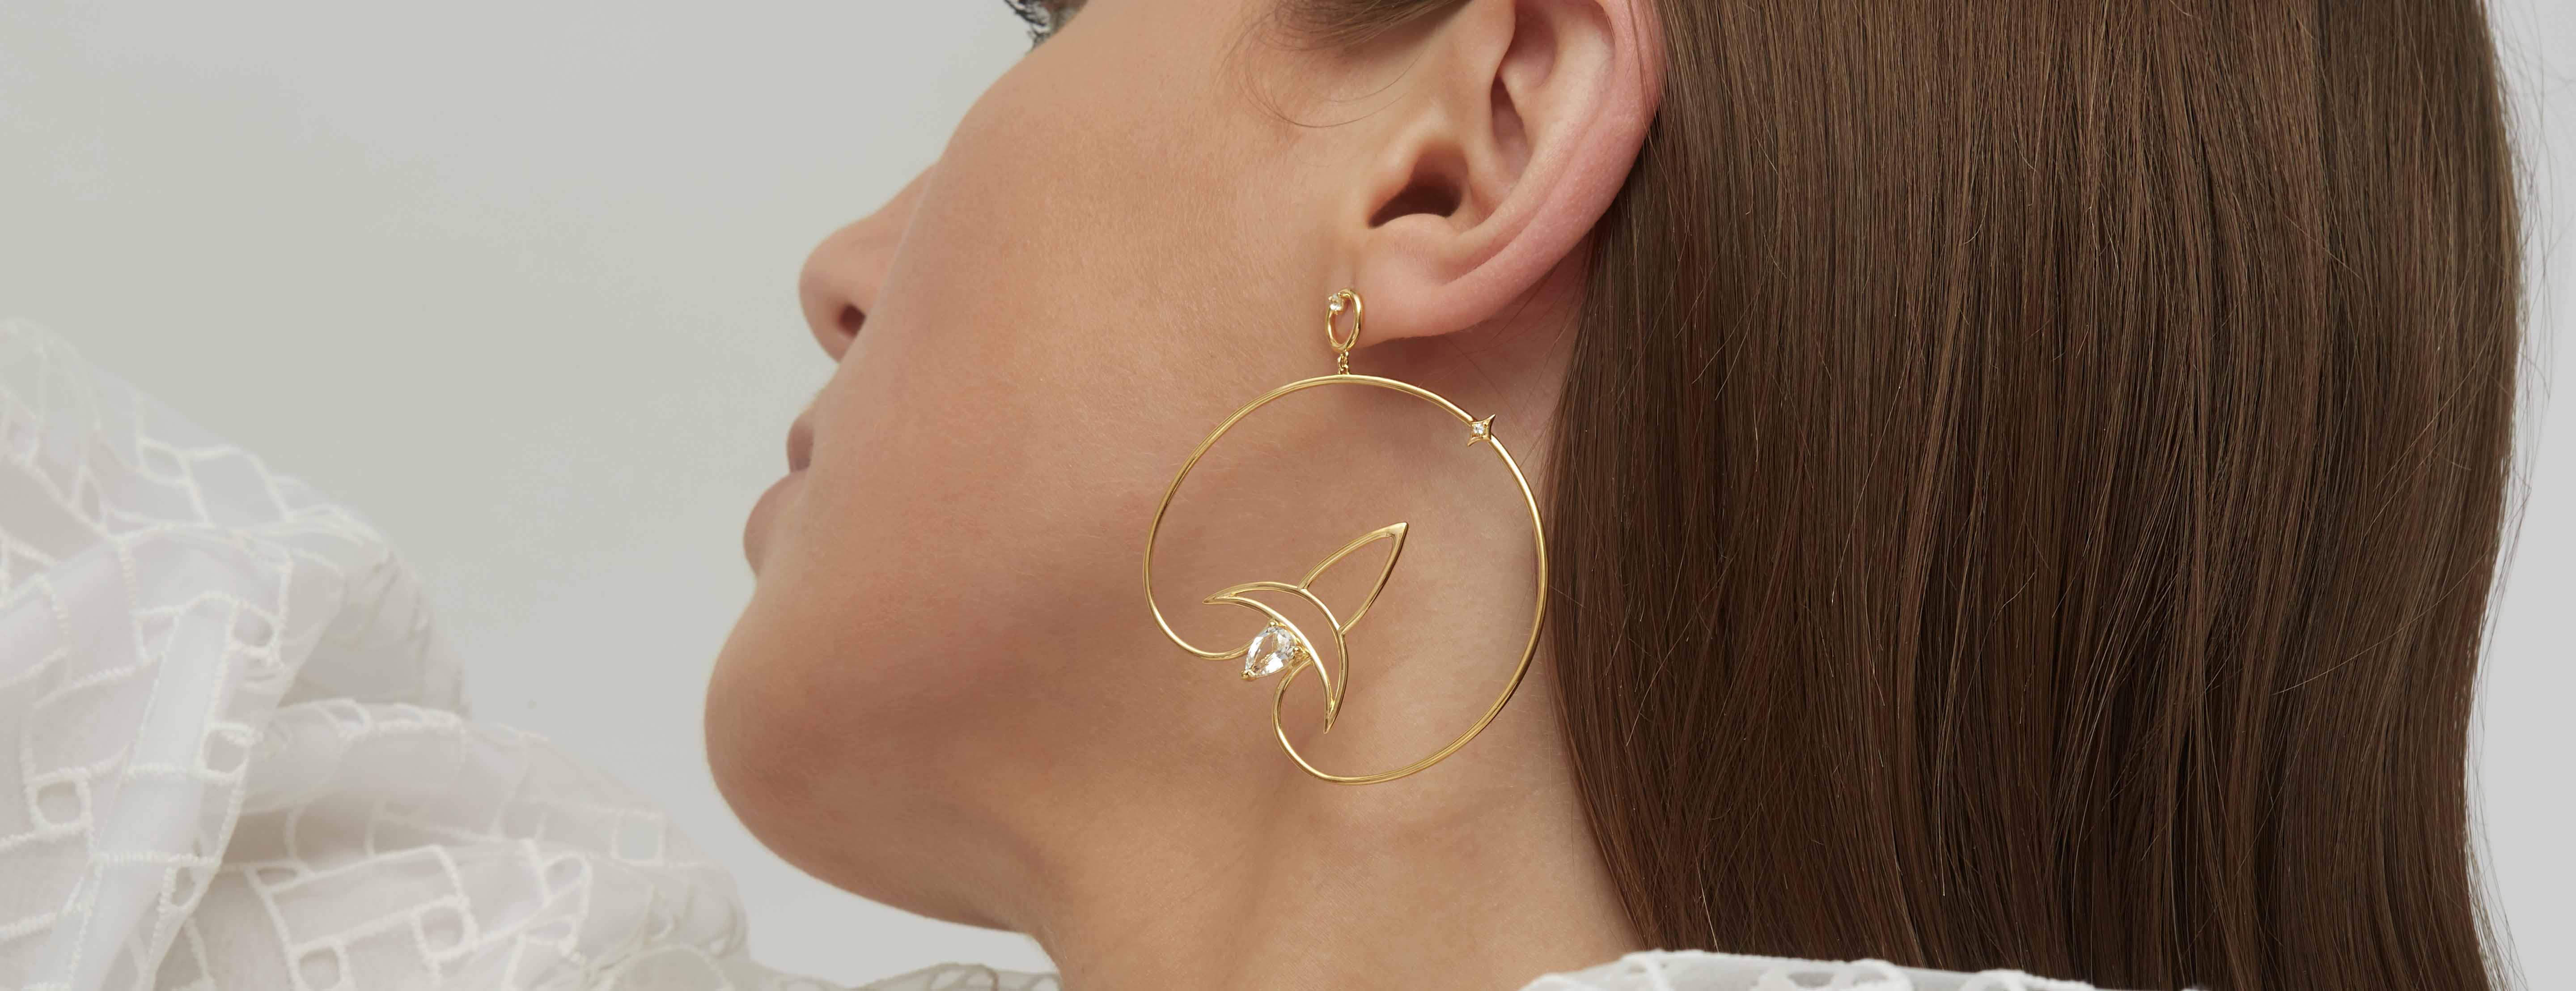 Ruifier gold-plated Cosmo Voyager earrings set with faux zircons